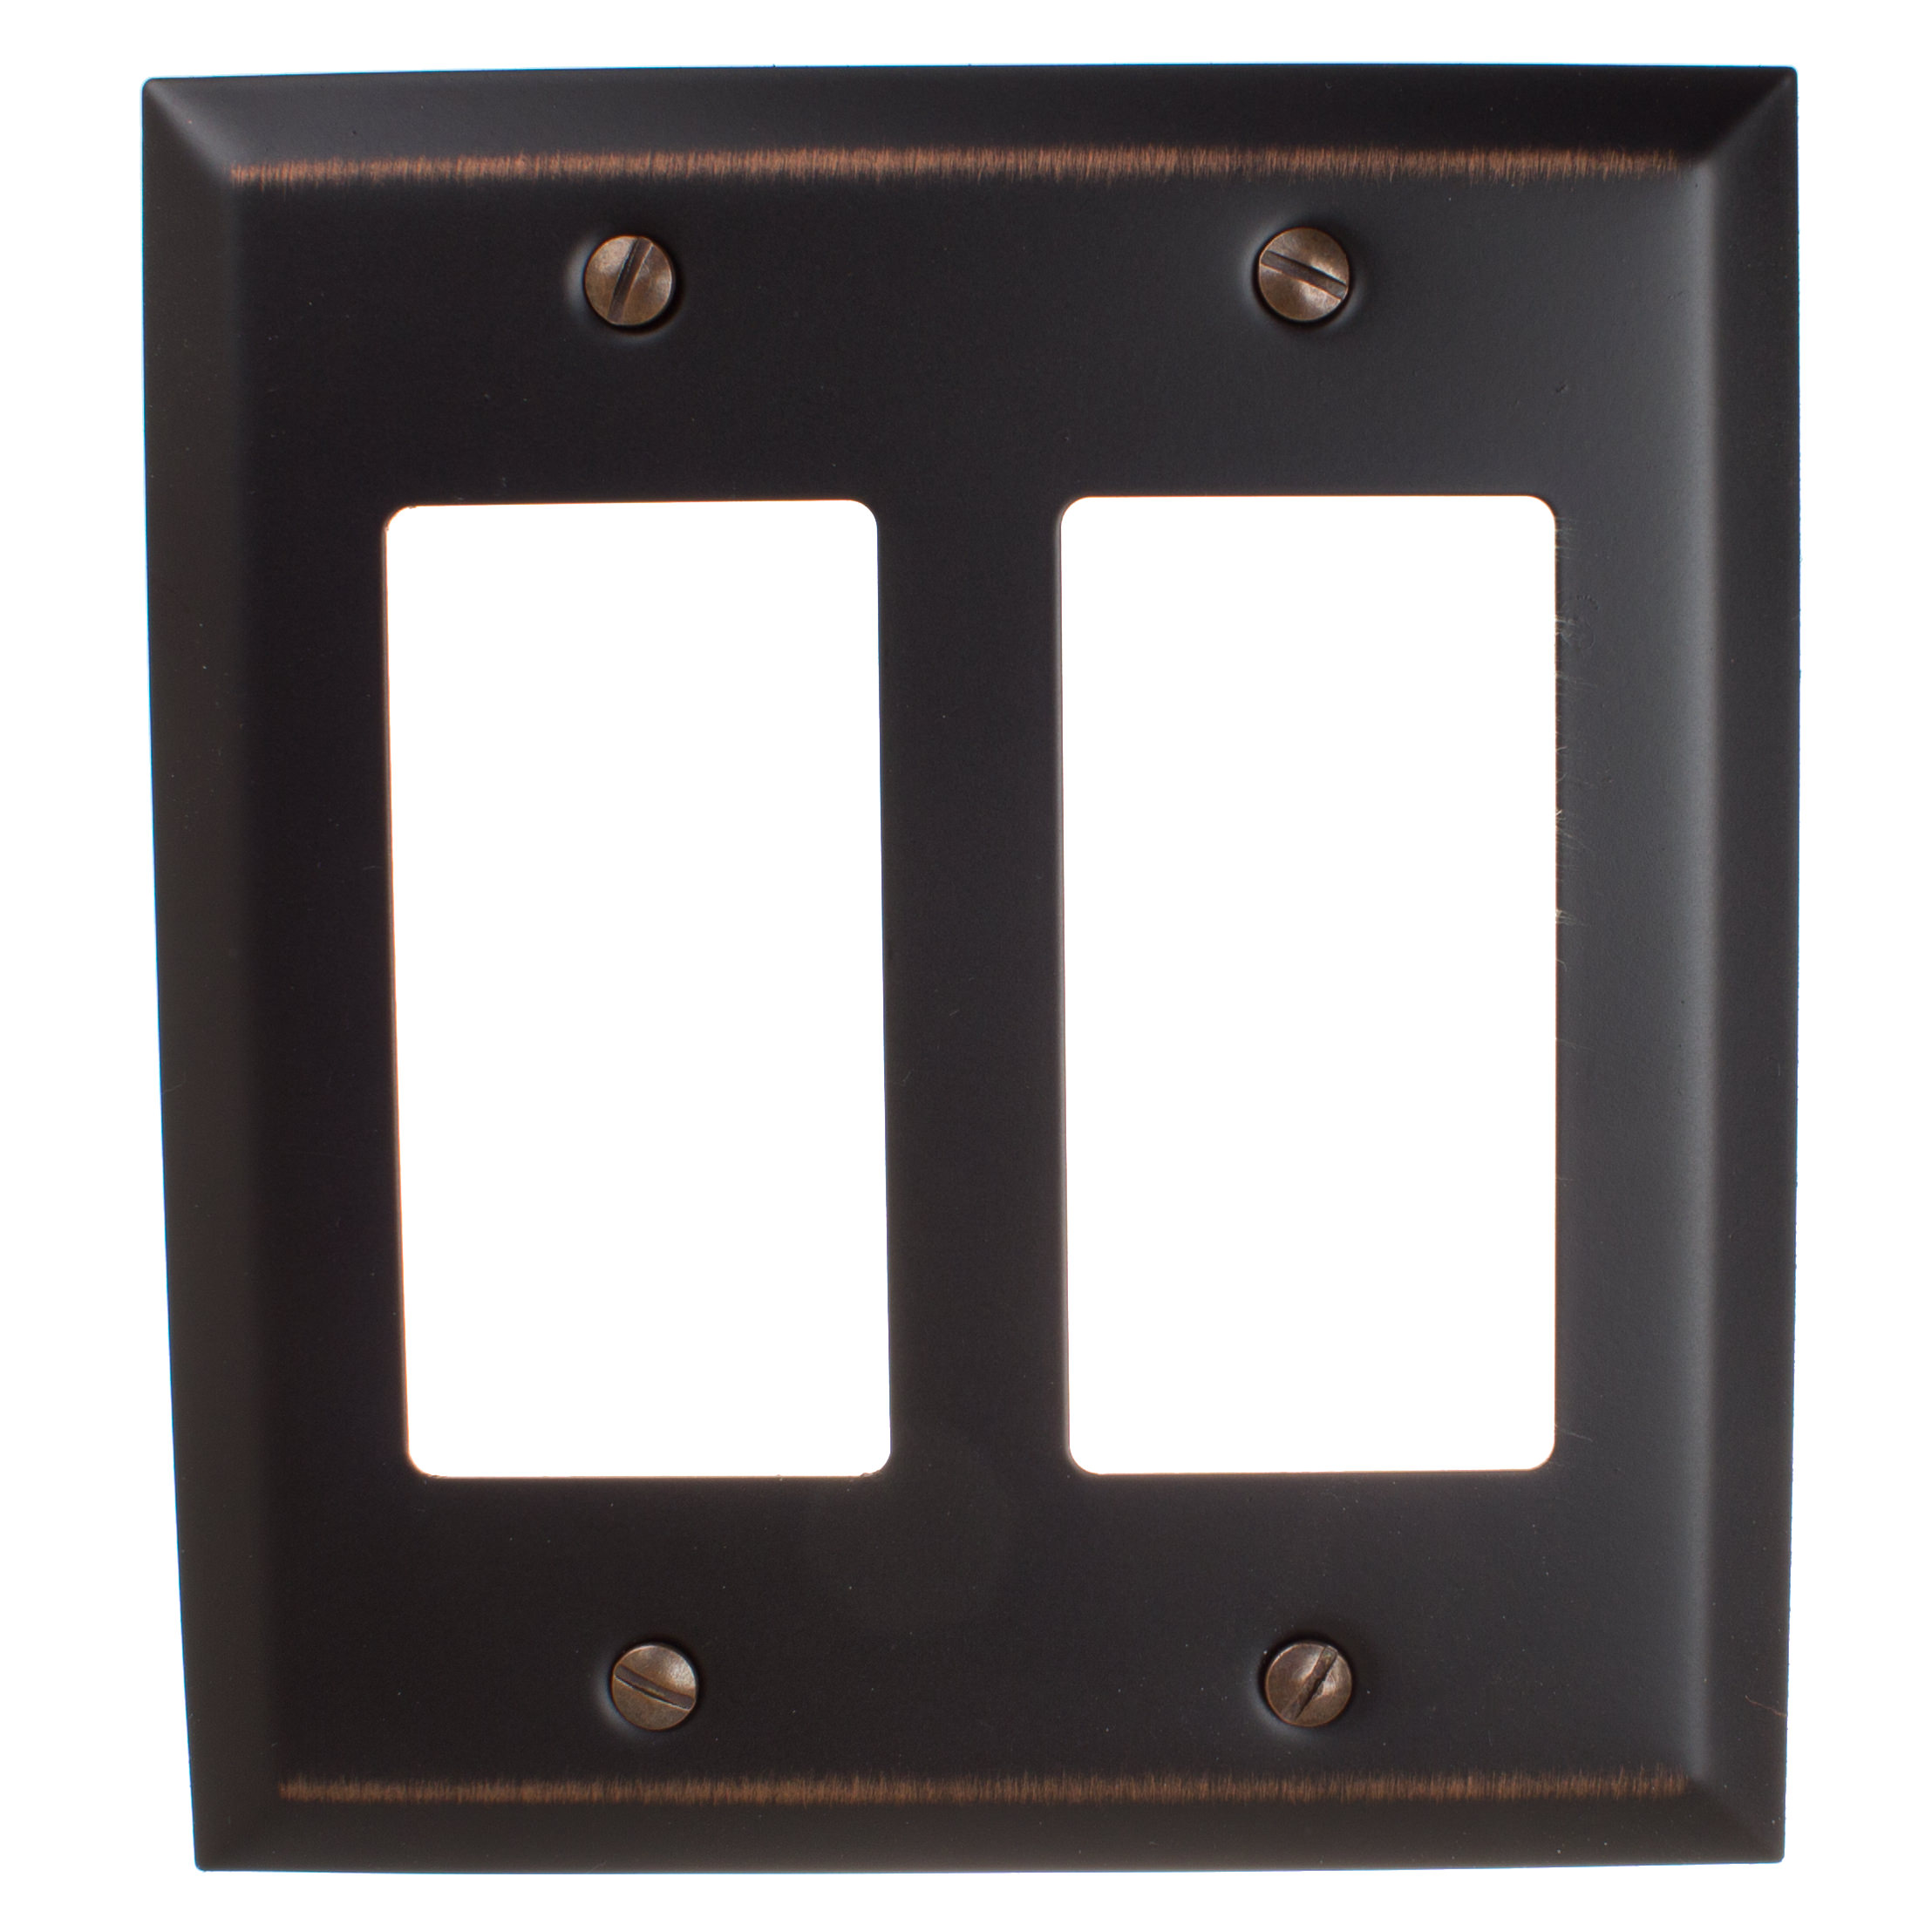 GlideRite Hardware Double Rocker 2-Gang Beveled Edge Wall Plate Cover, Brushed Nickel